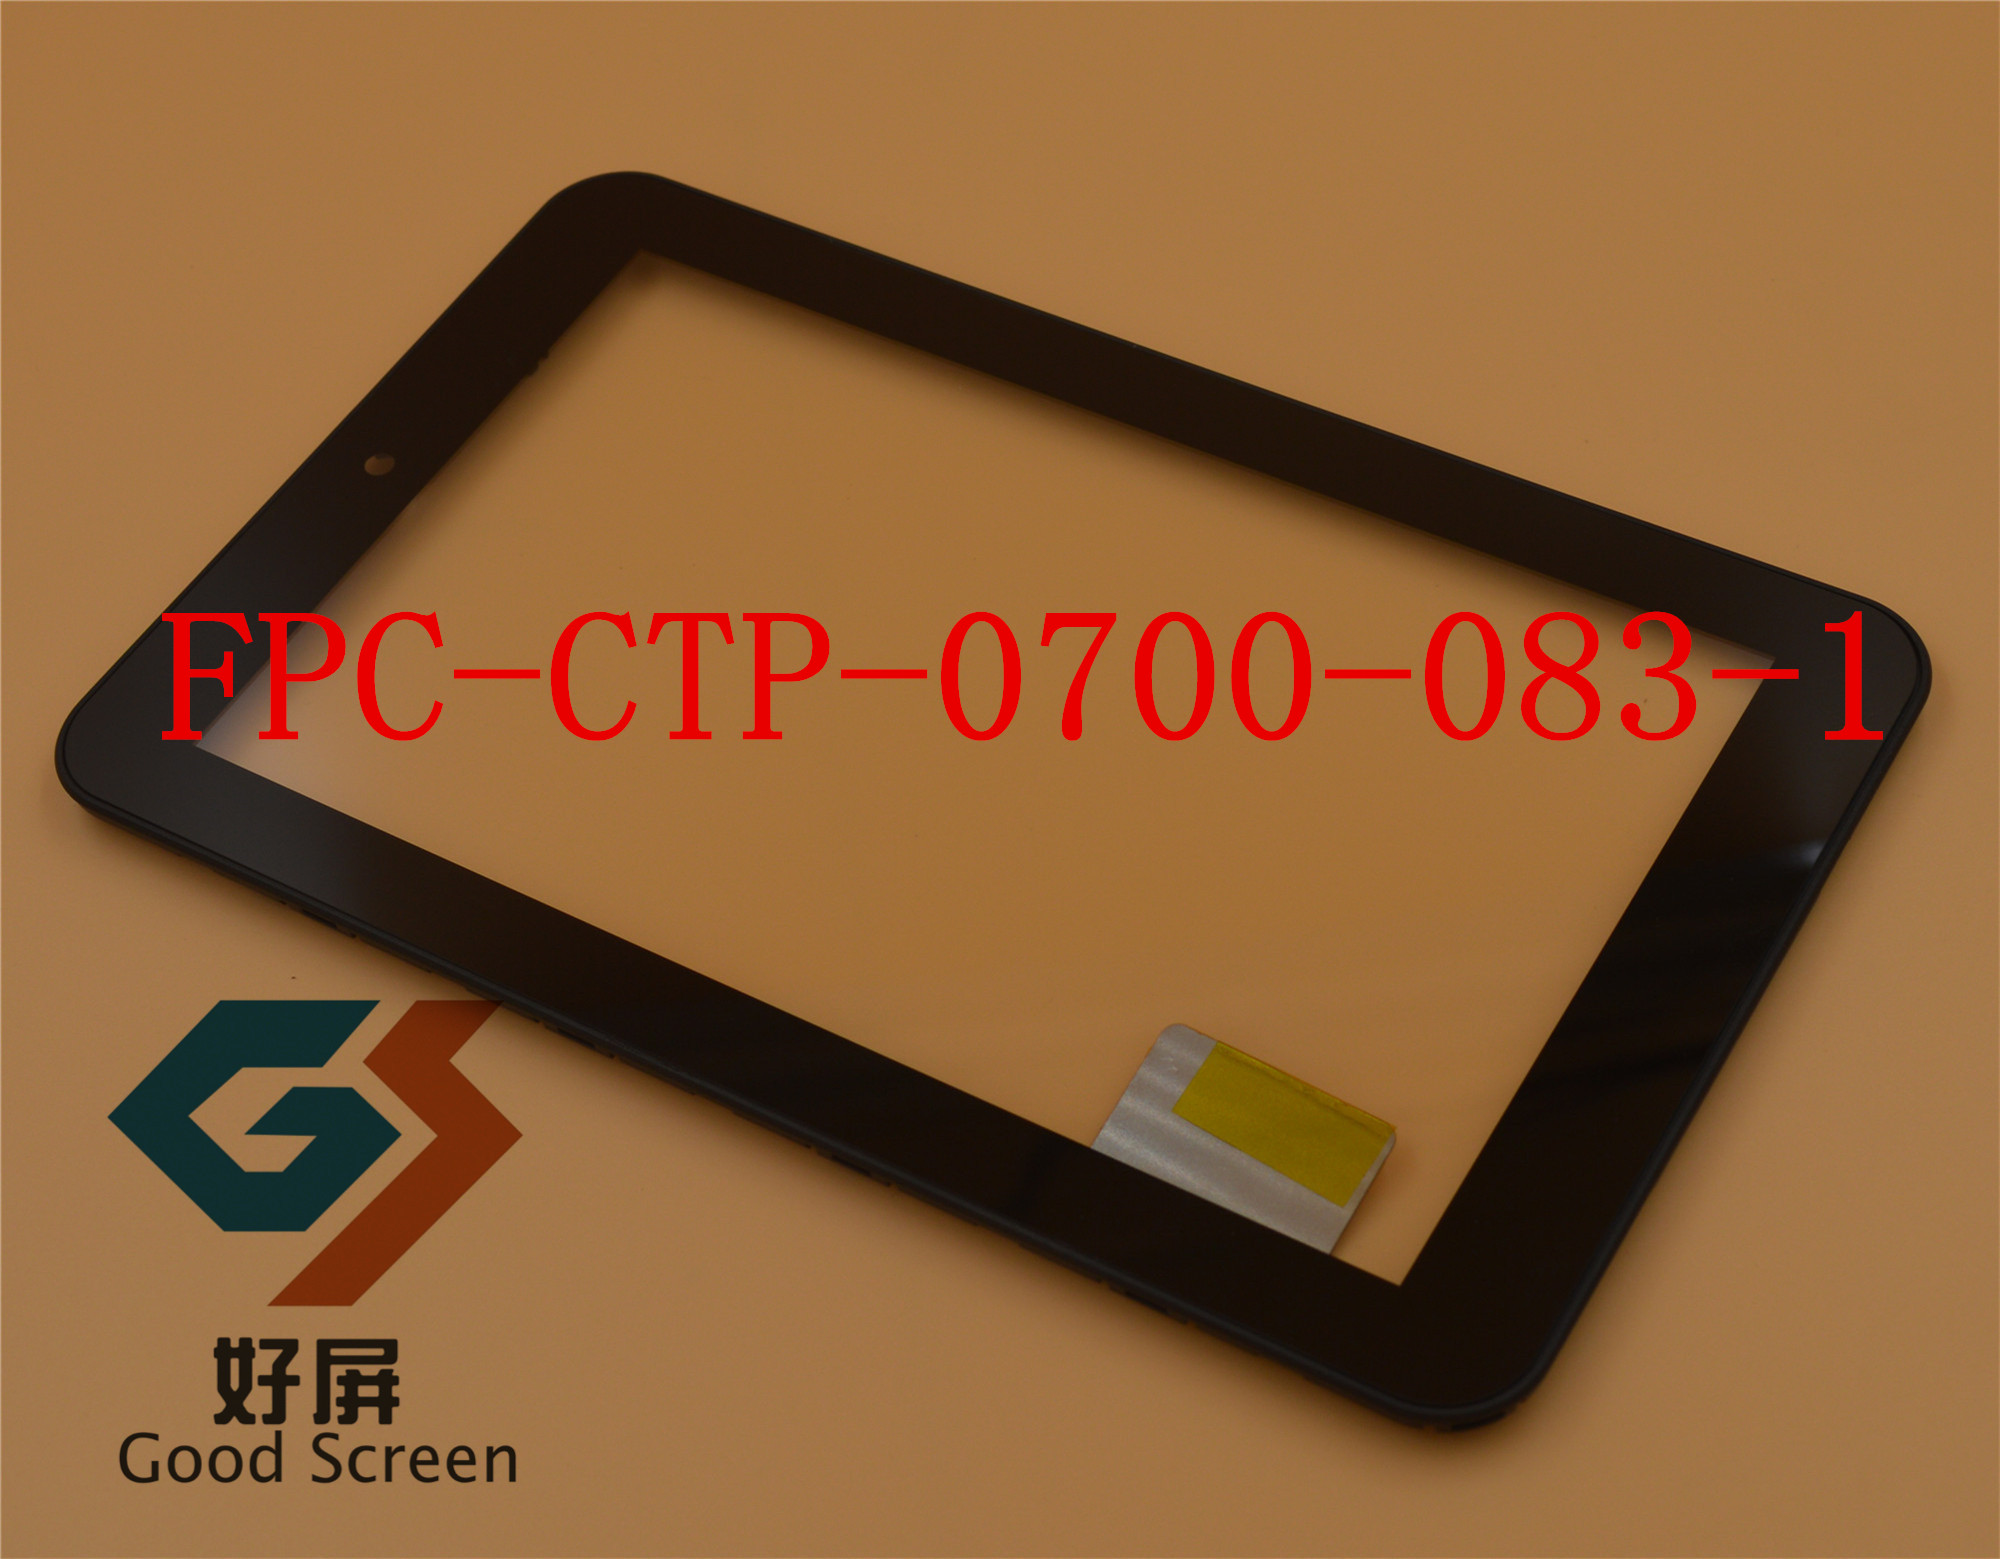 +shell FPC-CTP-0700-083-1 7 Prestigio multiPad 7.0 PMP5770d Prime Duo tablet pc touch panel digitizer glass replacement new 7 touch screen digitizer replacement fpc ctp 0700 066v7 1 tablet pc